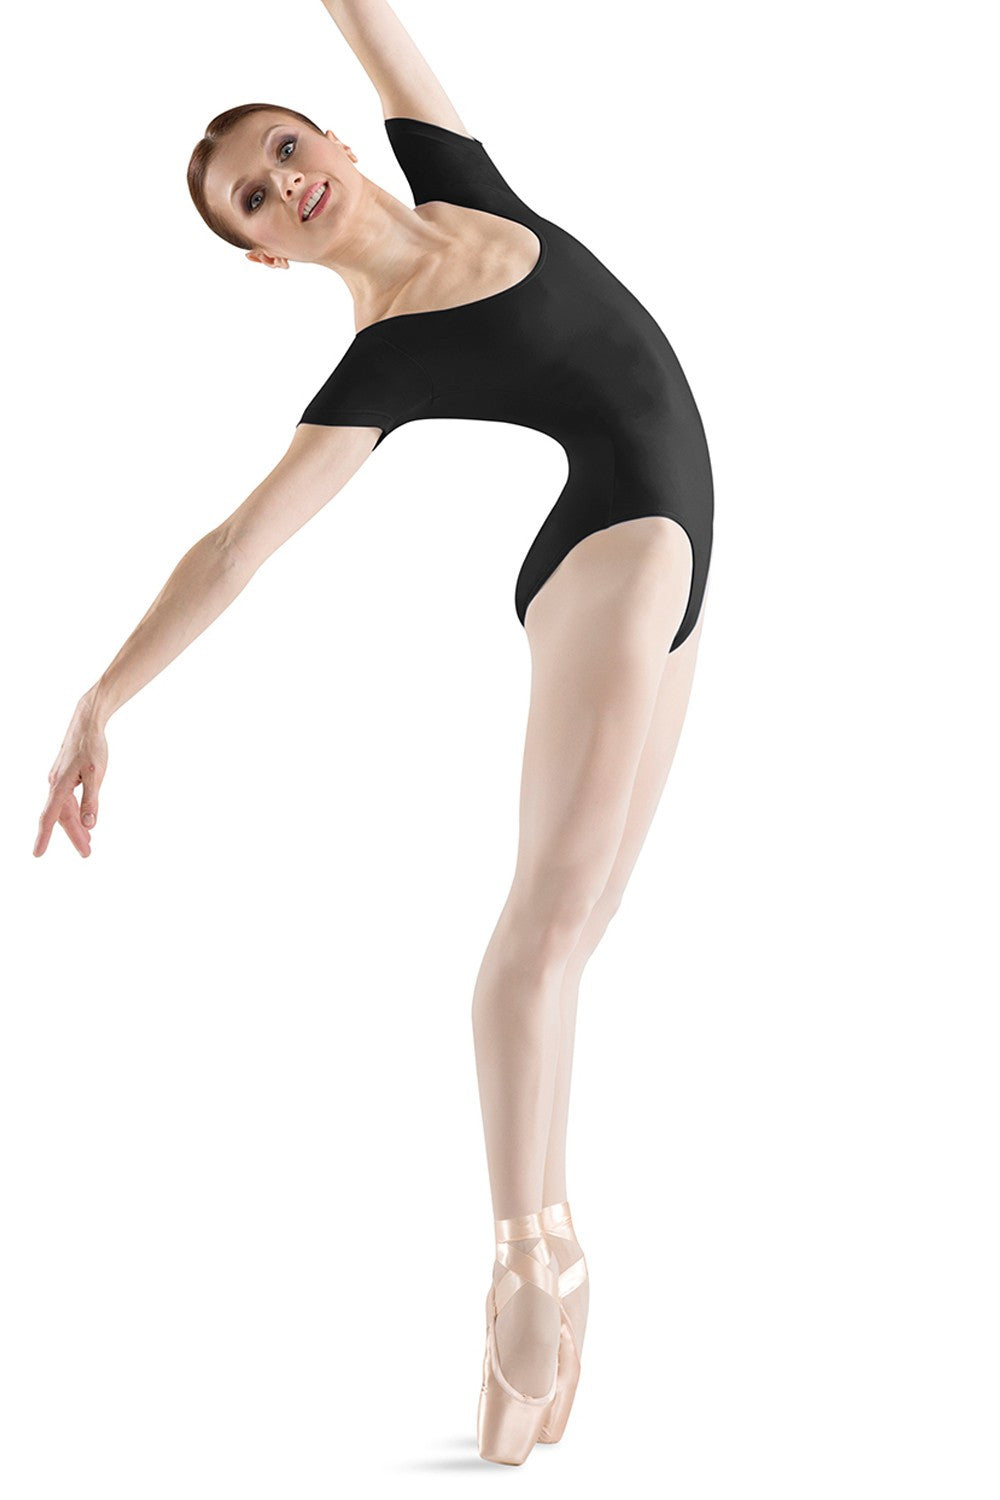 BCL5402 Cap Sleeve Leotard - Women